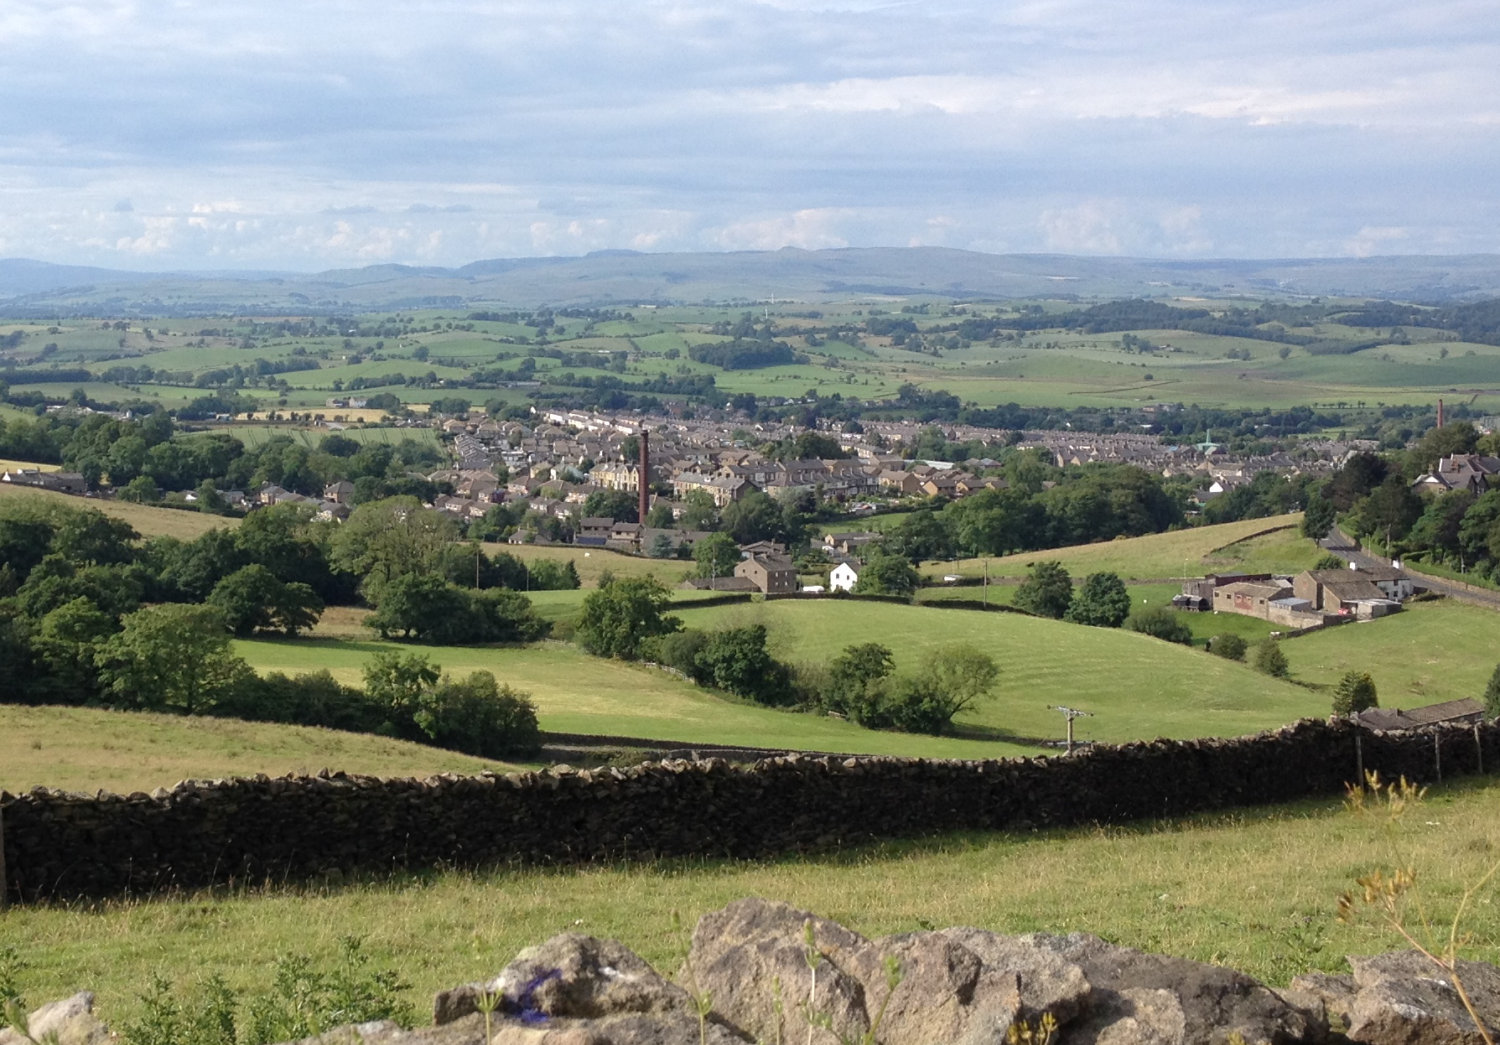 Barnoldswick and the Yorkshire Dales